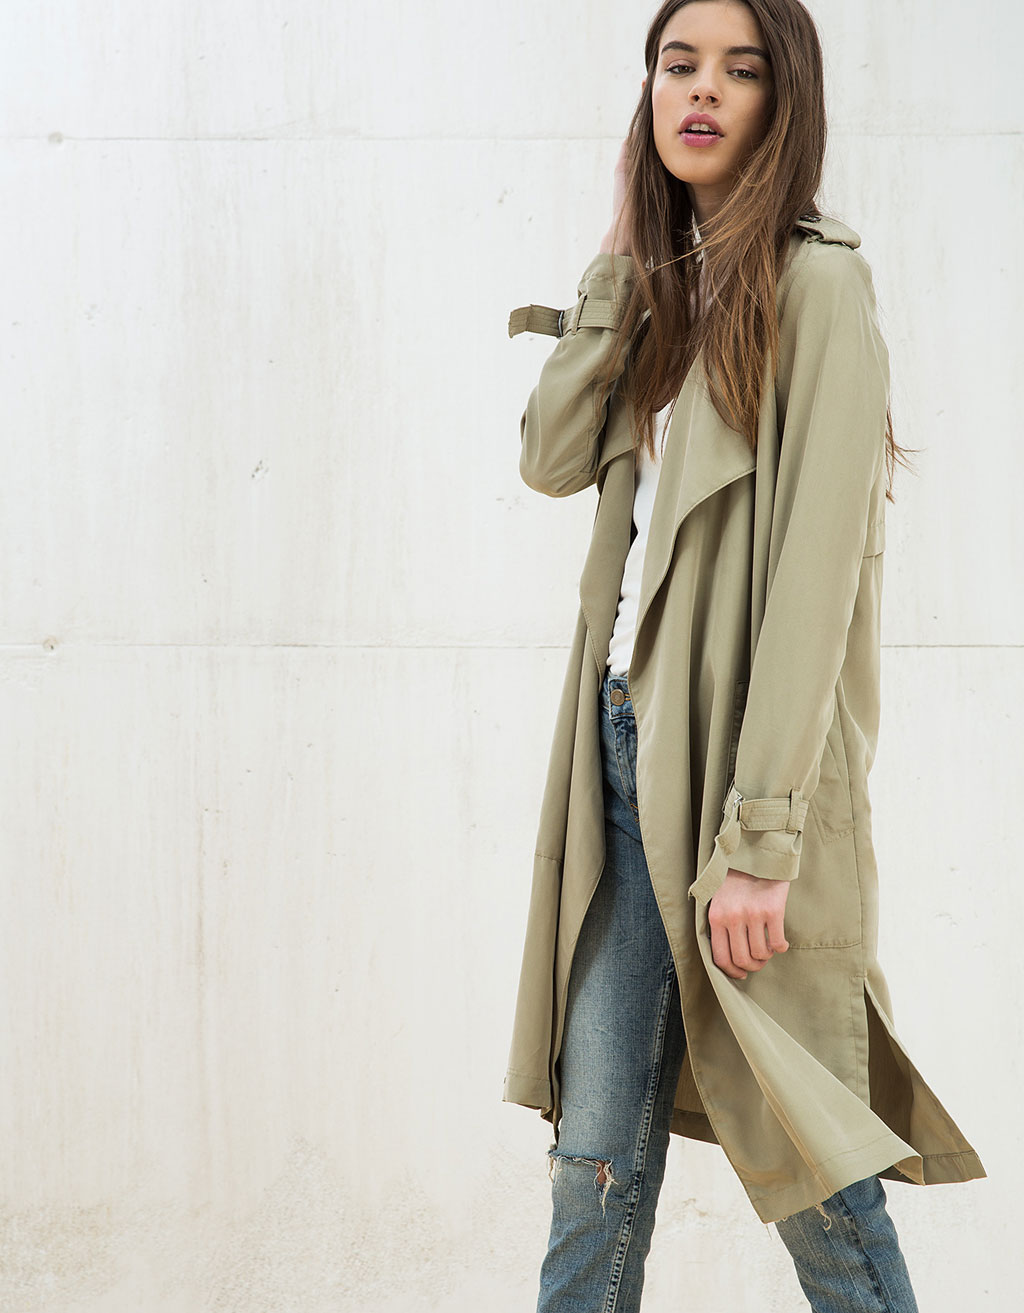 36d3f7f534331 Long trench coat - Jackets - Bershka Singapore - ShopperBoard